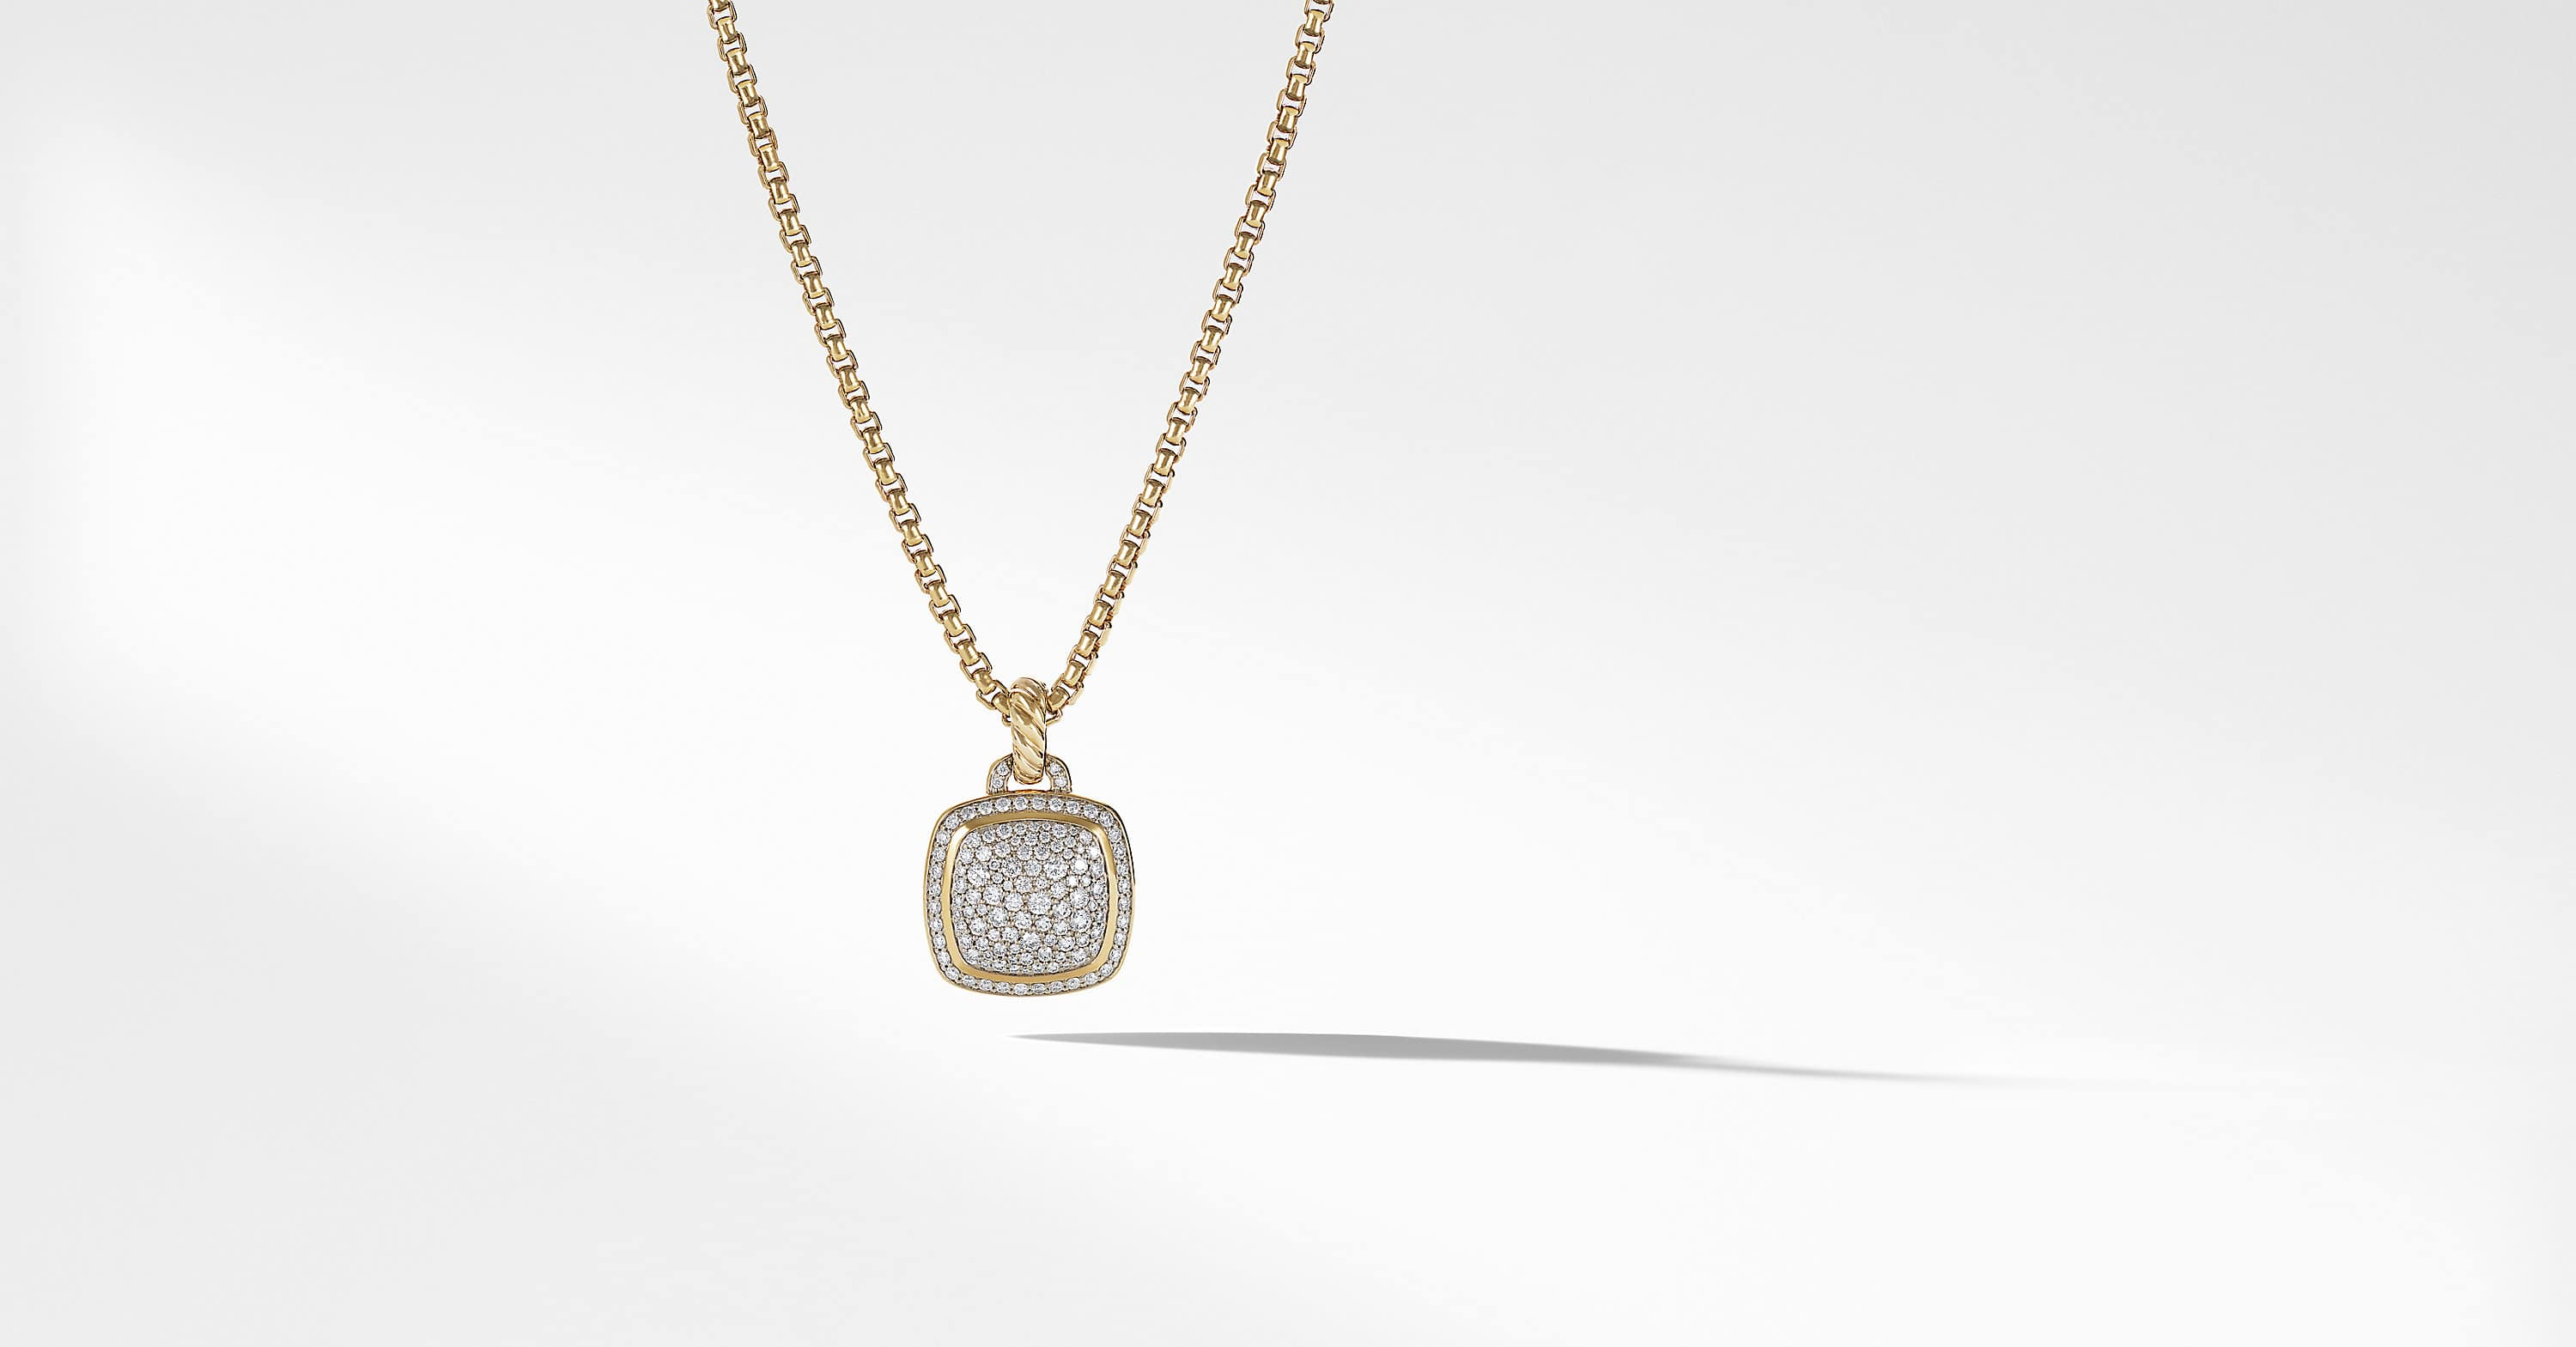 Albion Pendant with Diamonds in 18K Gold, 14mm